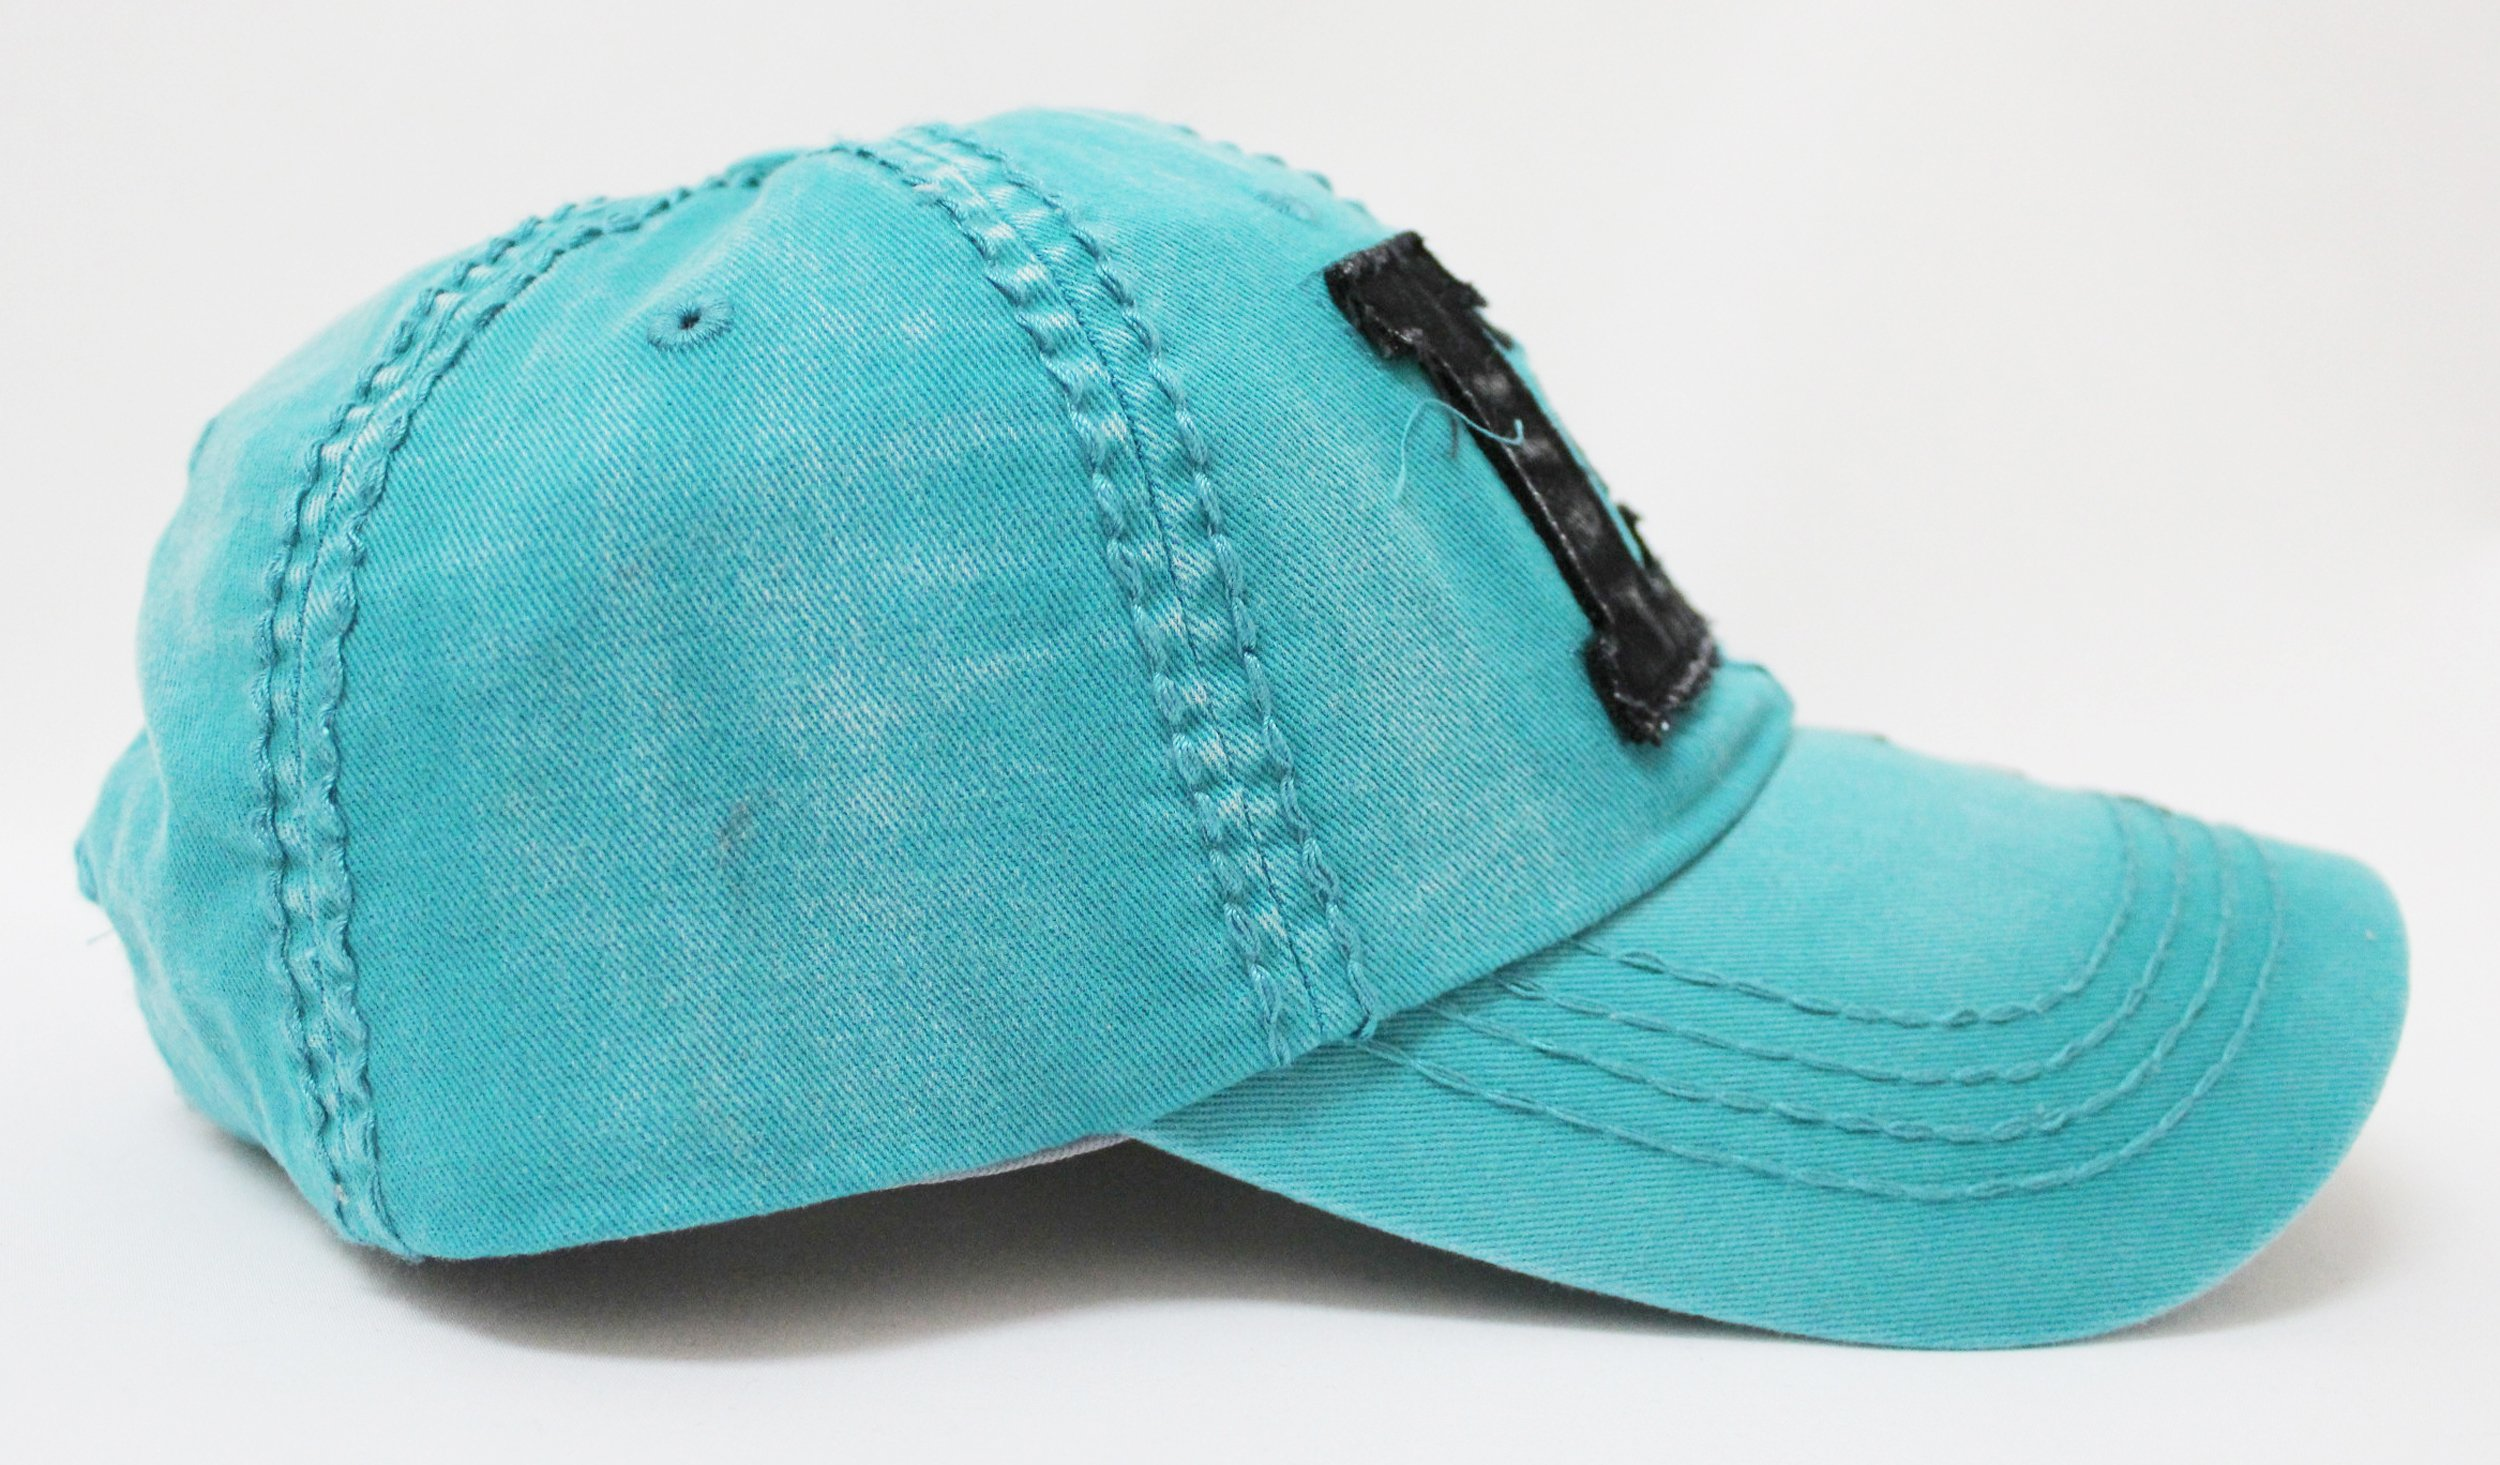 TURQUOISE/Black ''Live, Laugh, Love'' Patch on Vintage Cap w/ Contrast Stitch Writing by CAPS 'N VINTAGE (Image #2)